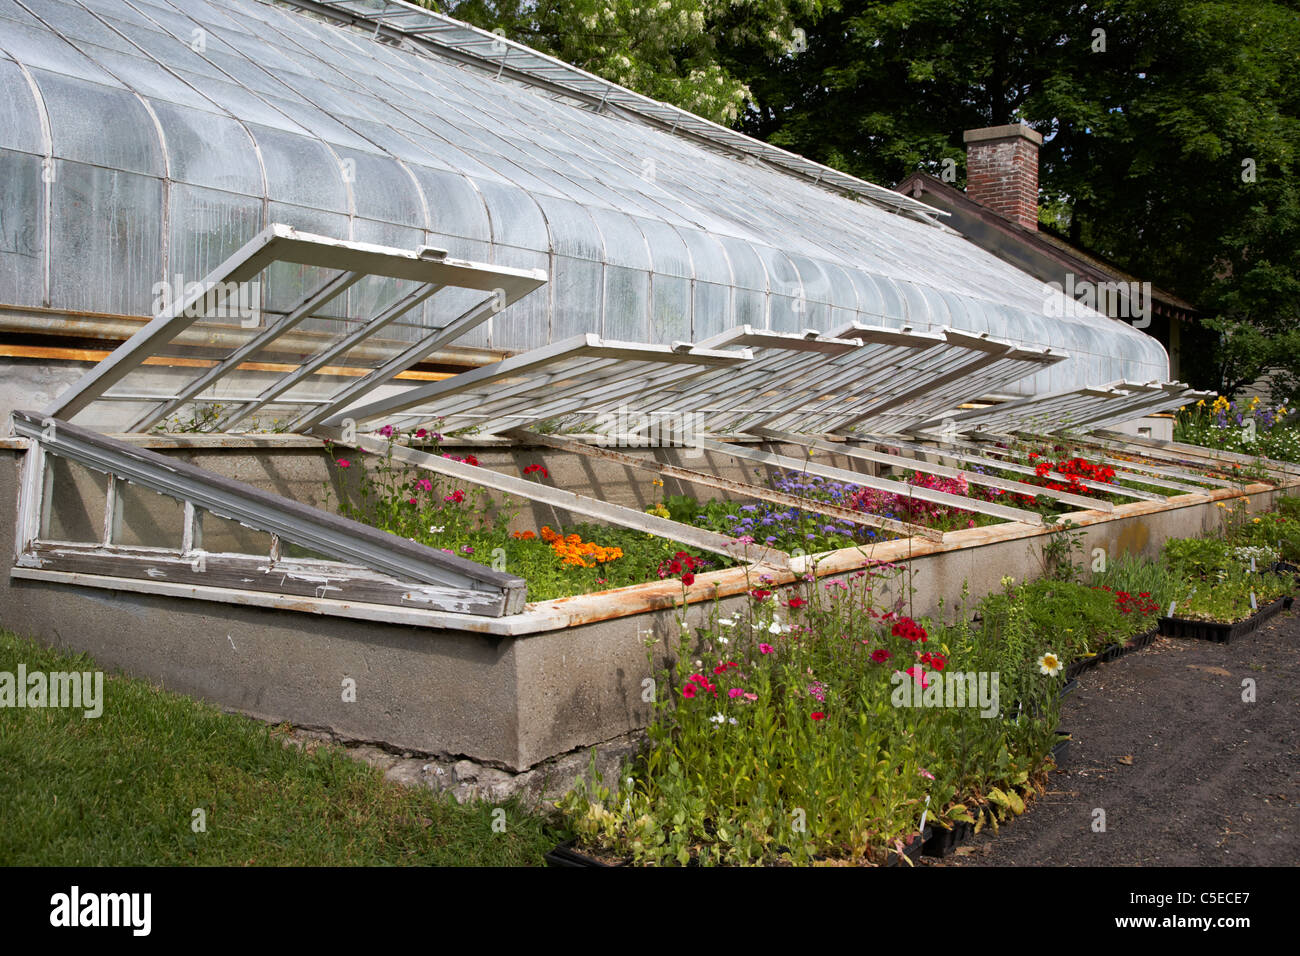 Cold house greenhouse